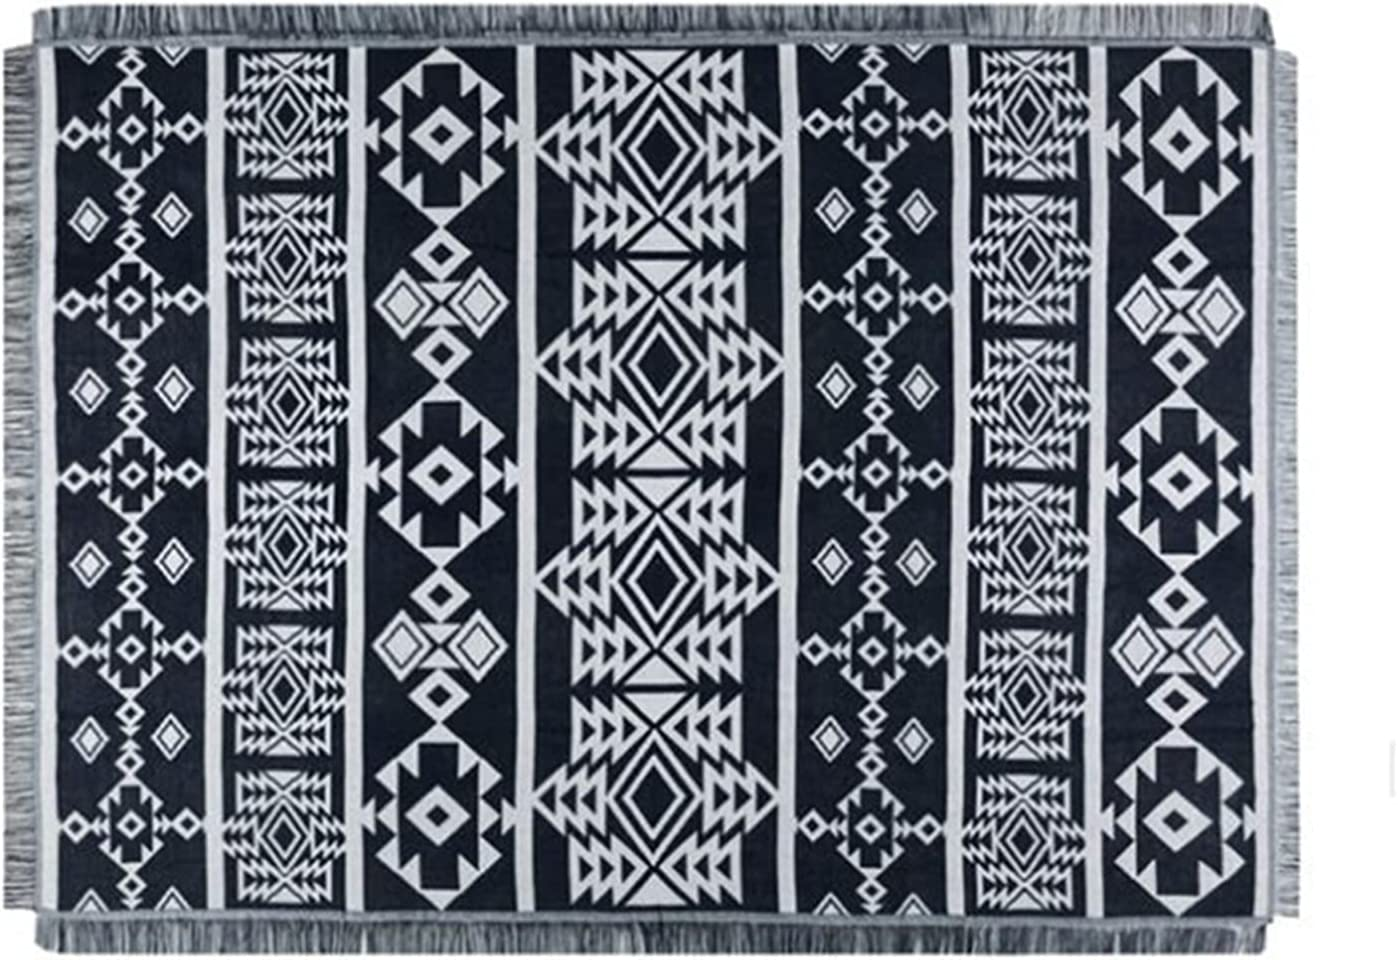 AQHXLS Outdoor Camping Blanket shipfree Bohemian Picnic Ethnic At the price of surprise